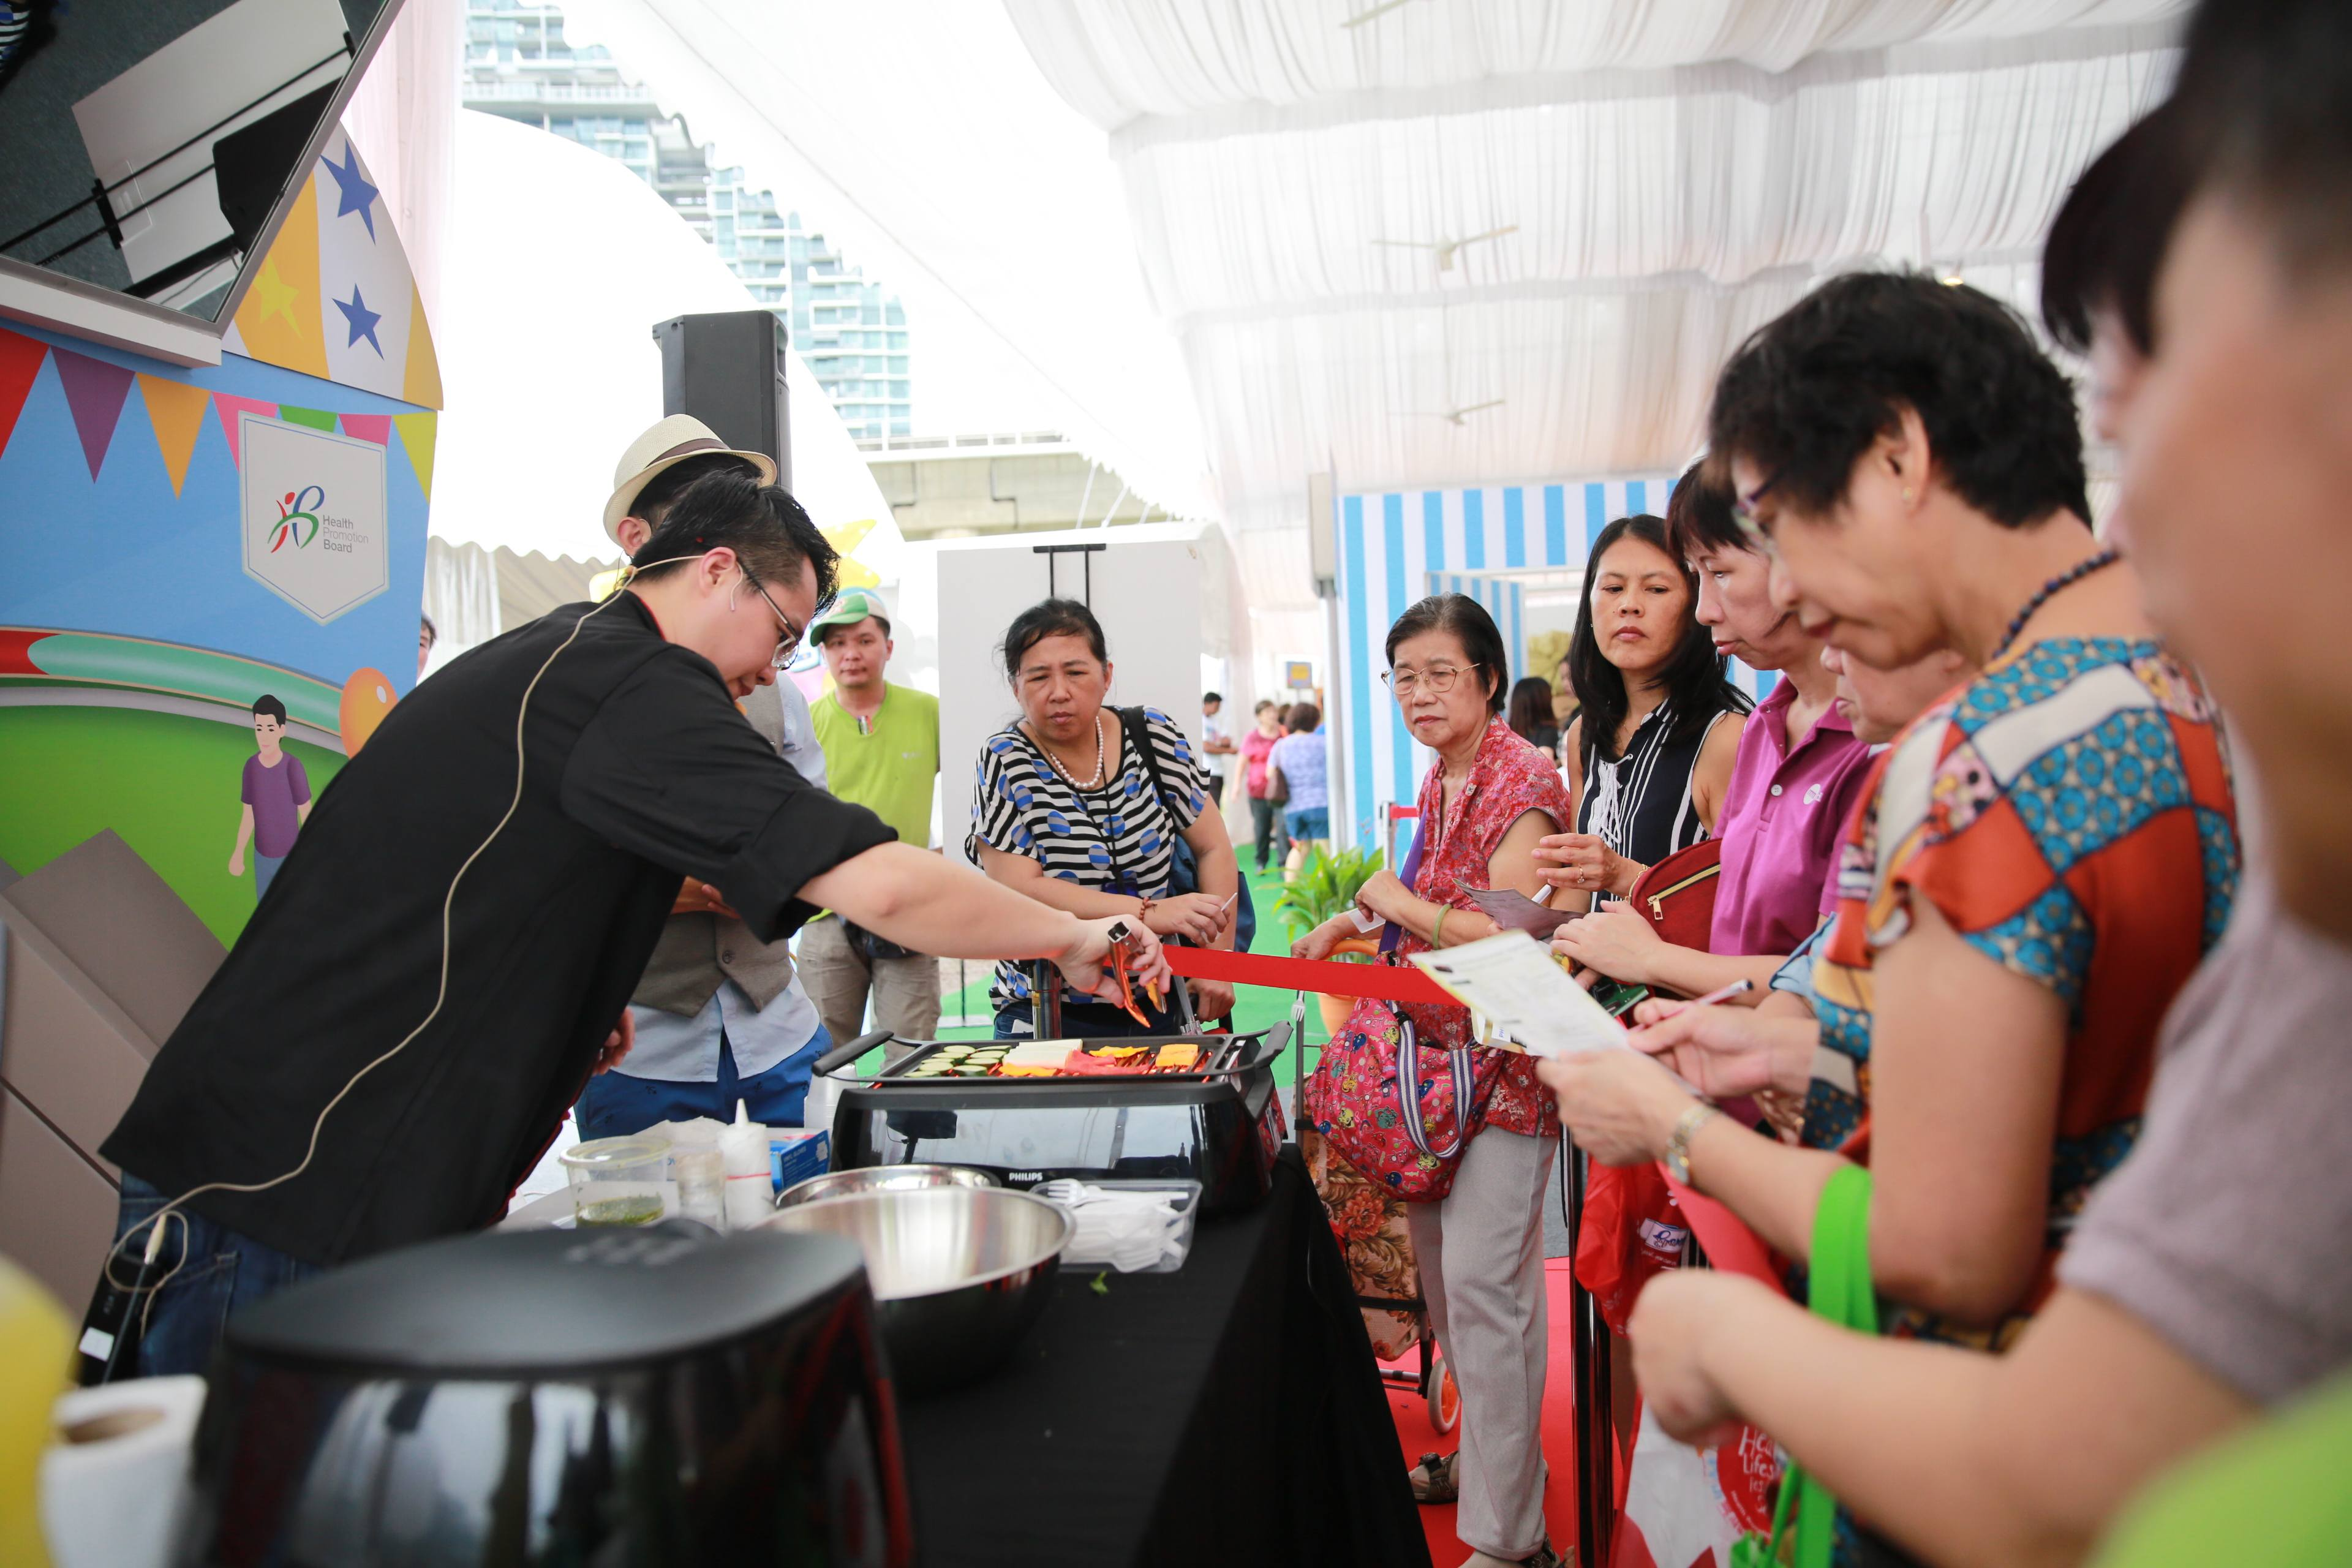 Cooking demo KAI 9328 Healthy Lifestyle Festival SG 2018: An adventure for the whole family